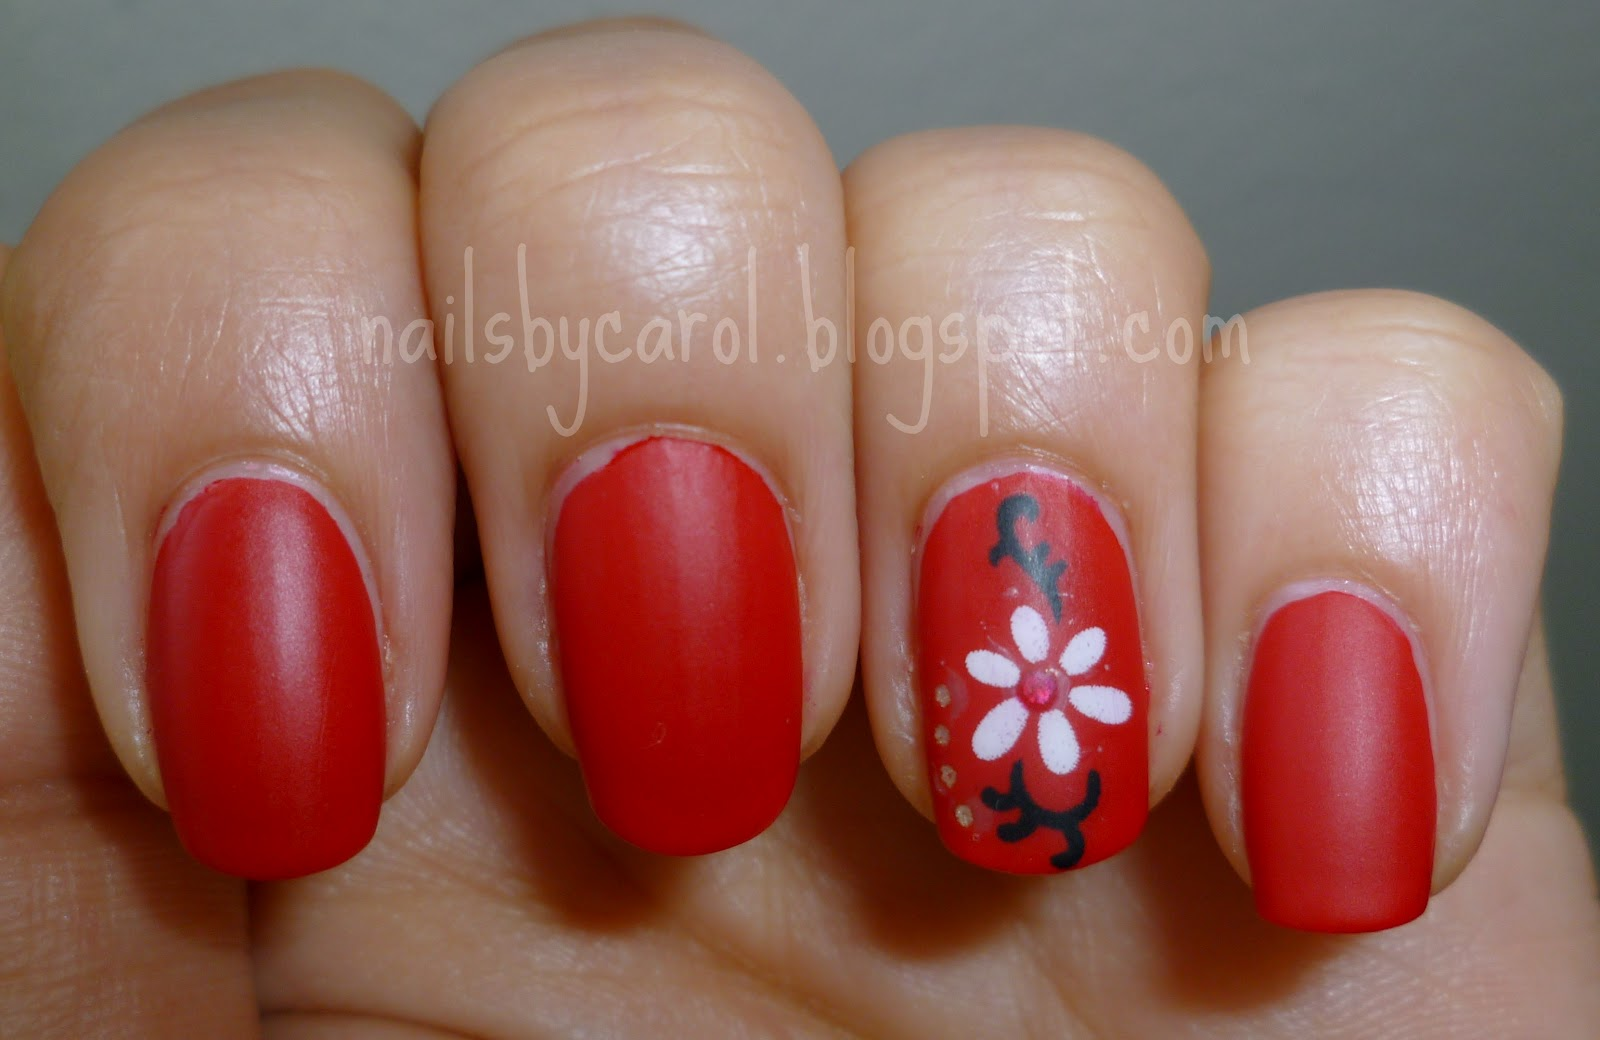 Nails by Carol: Sally Hansen Rapid Red and Nail Art Stickers